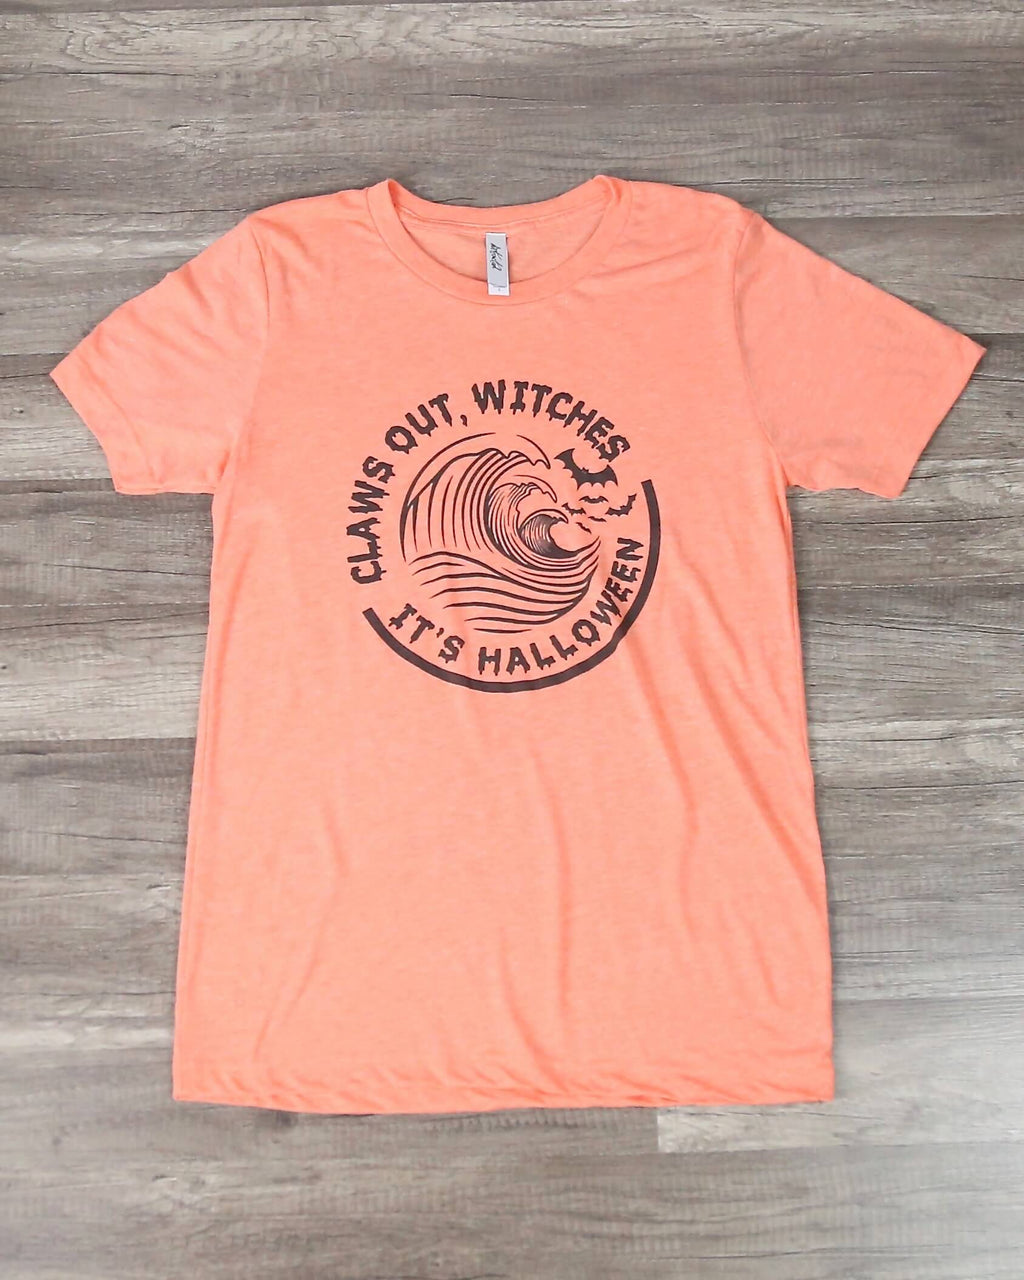 Distracted - Claws Out Witches, It's Halloween Graphic Tee in Heather Orange